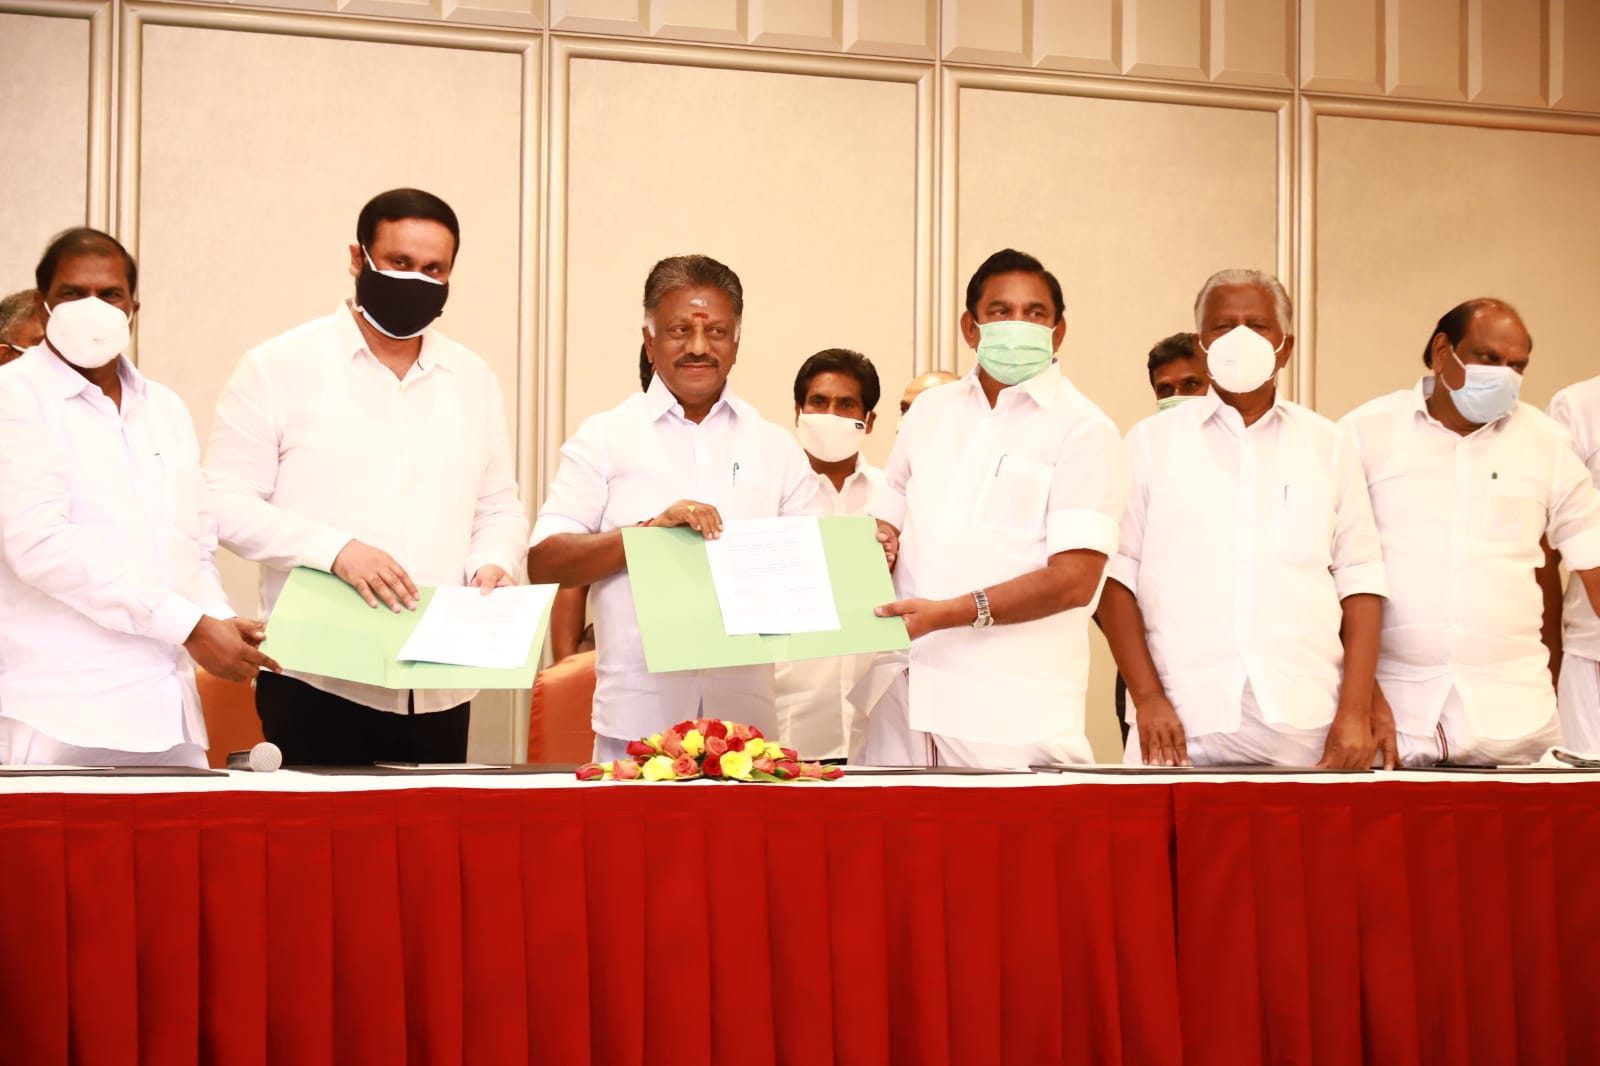 Pattali Makkal Katchi to contest 23 seats in alliance with AIADMK